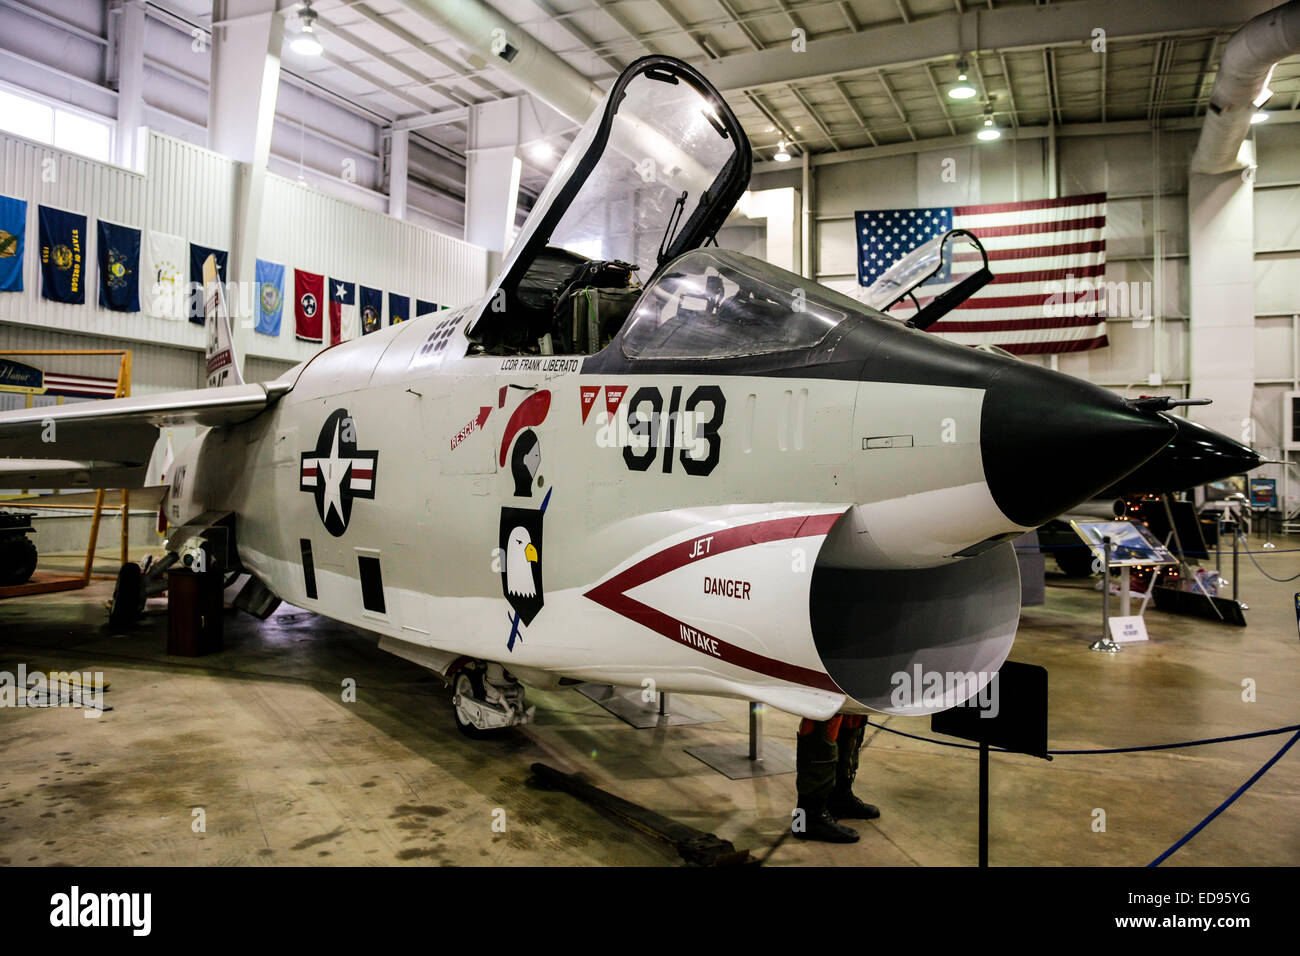 A LTV A-7 Corsair Carrier based Naval fighter plane at the USS Alabama Memorial Park in Mobile - Stock Image